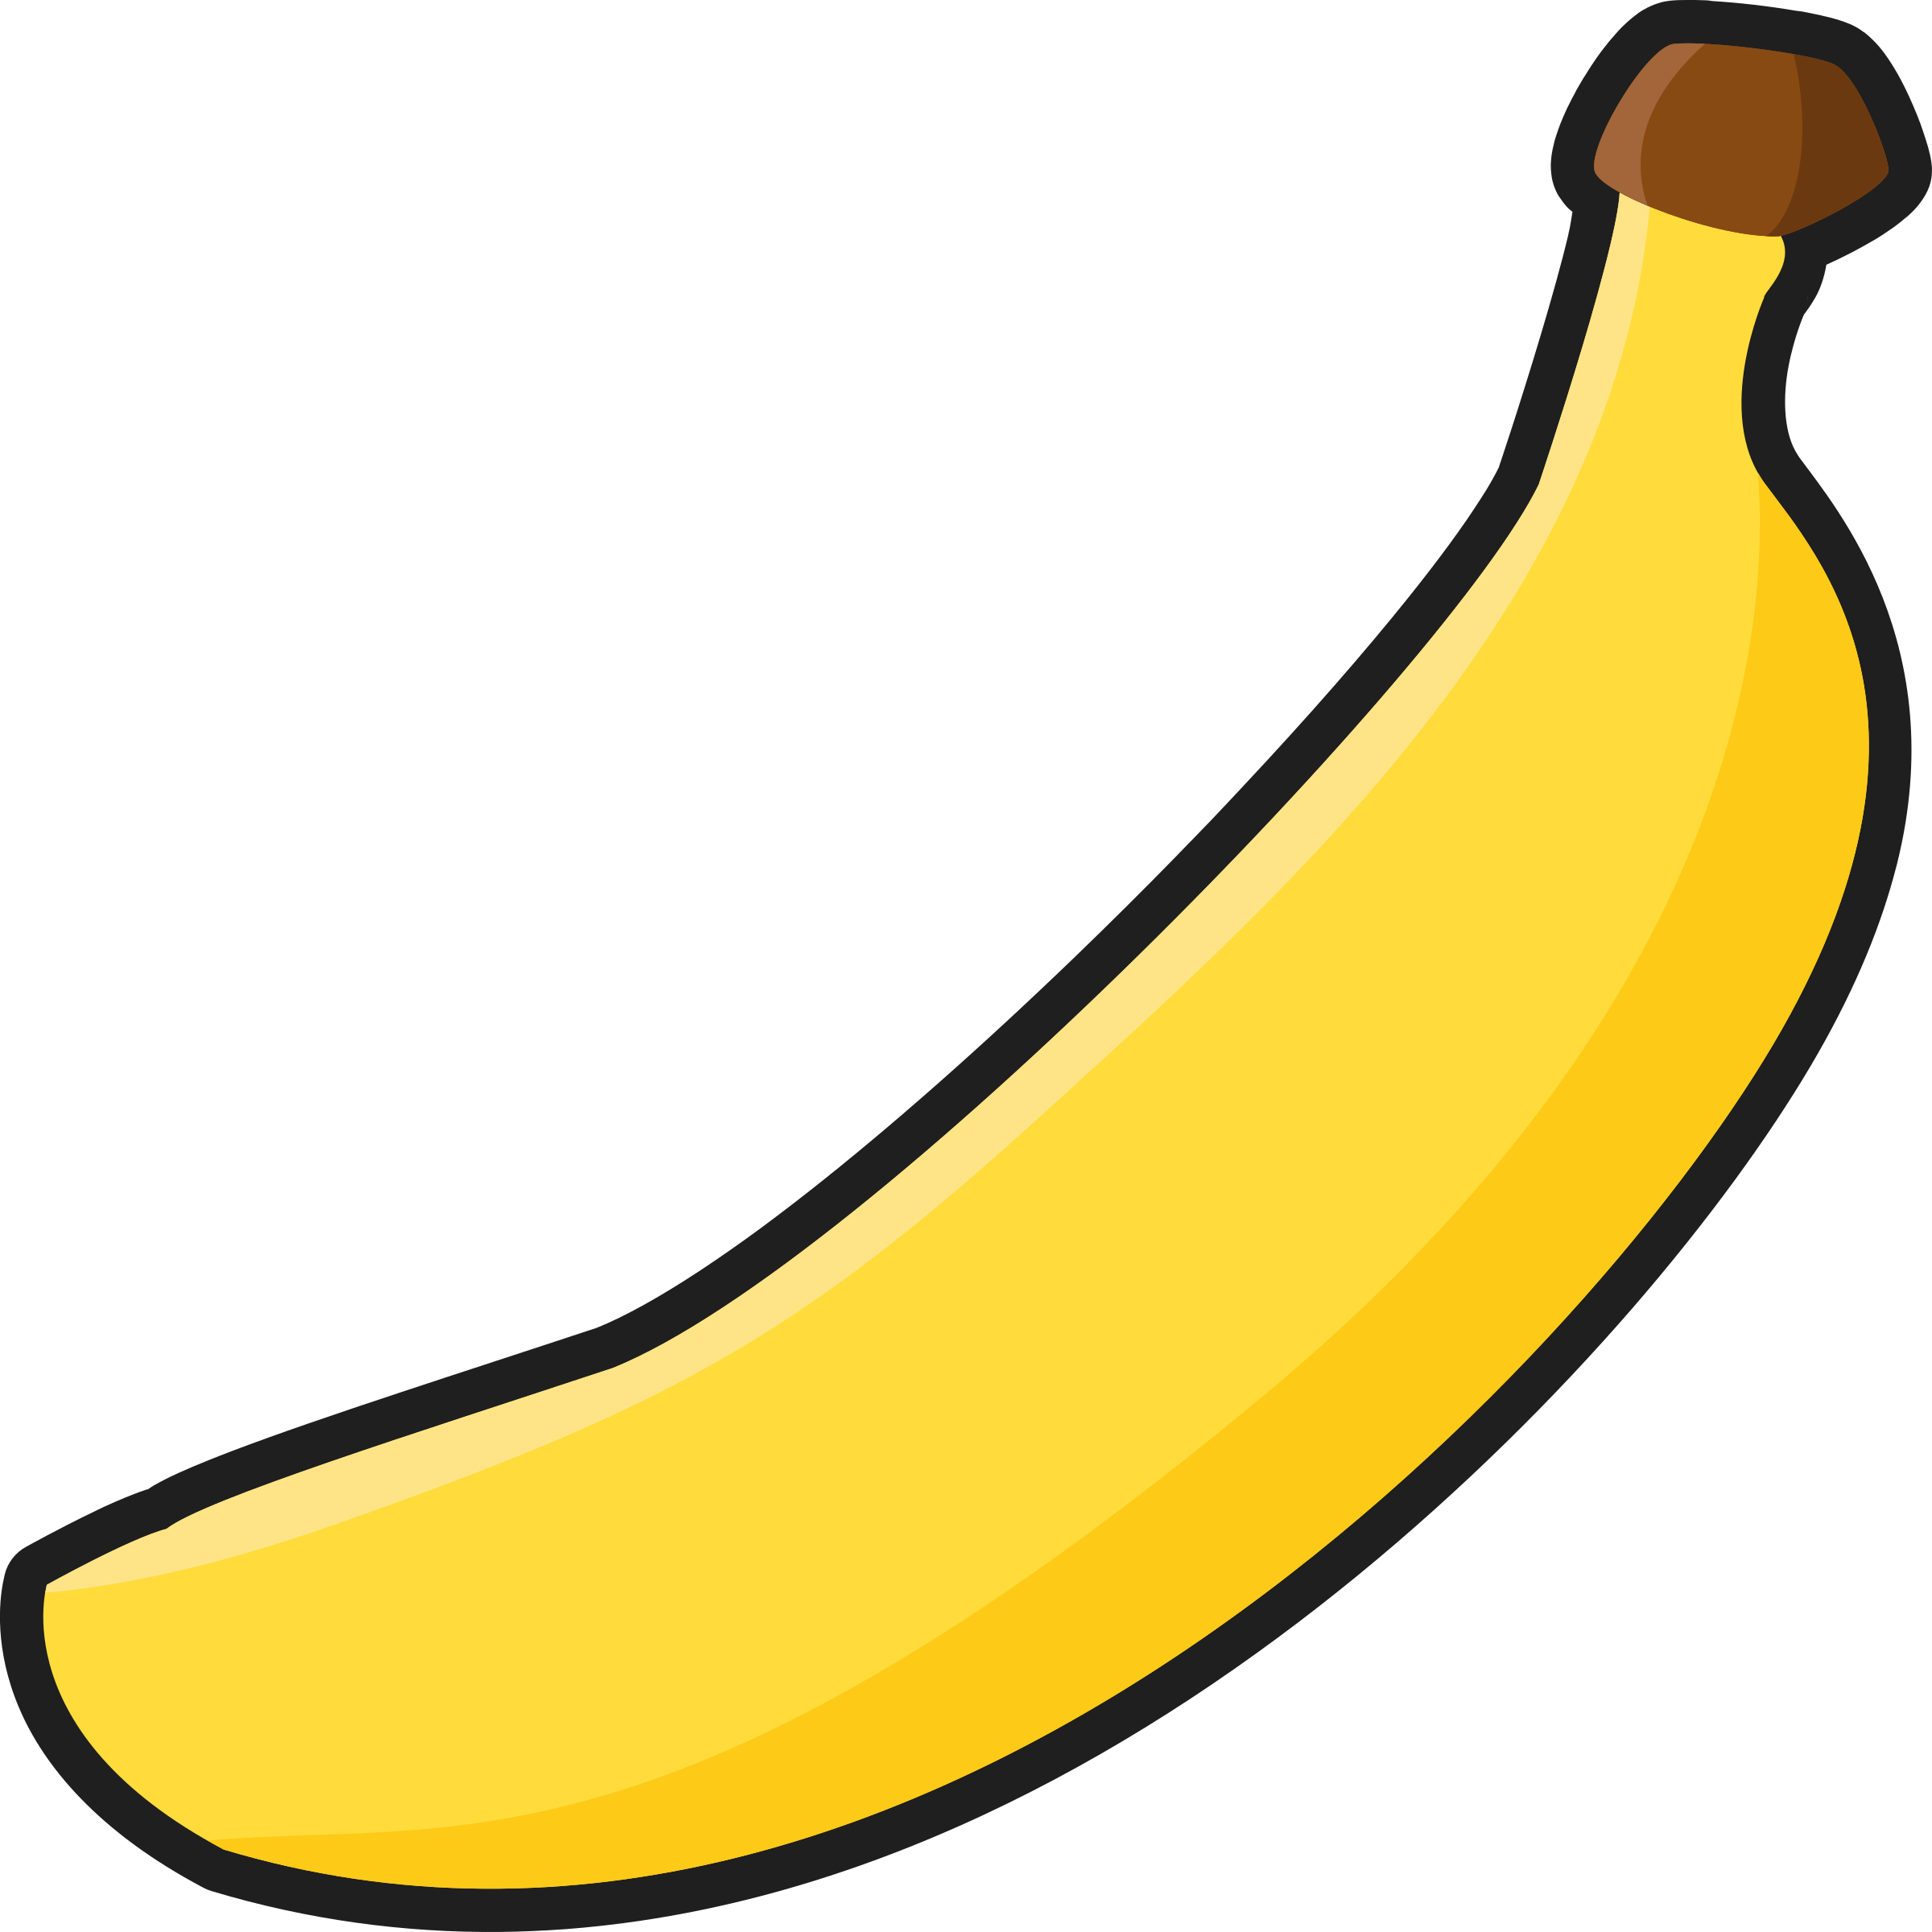 image transparent download Bananna clip. Banana clipart black and